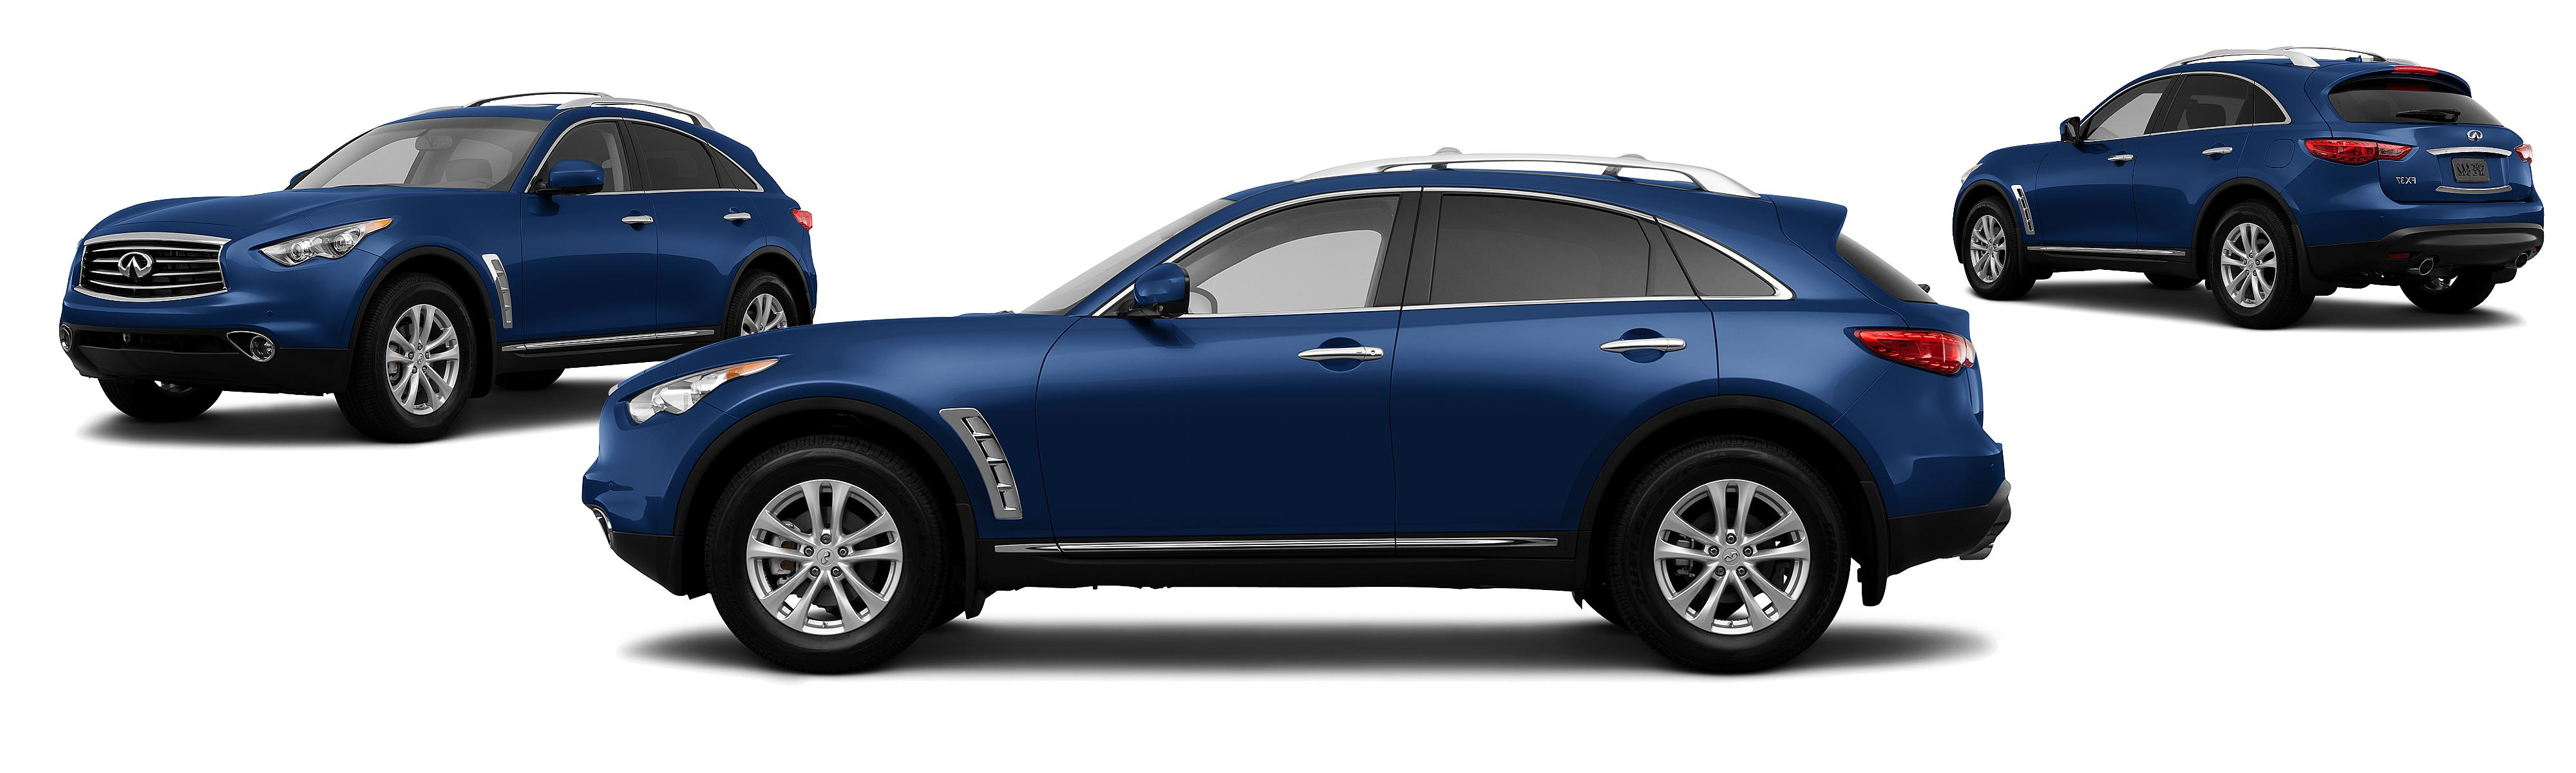 2013 infiniti fx37 blue image collections hd cars wallpaper 2013 infiniti fx37 blue image collections hd cars wallpaper 2013 infiniti fx37 blue image collections hd vanachro Image collections